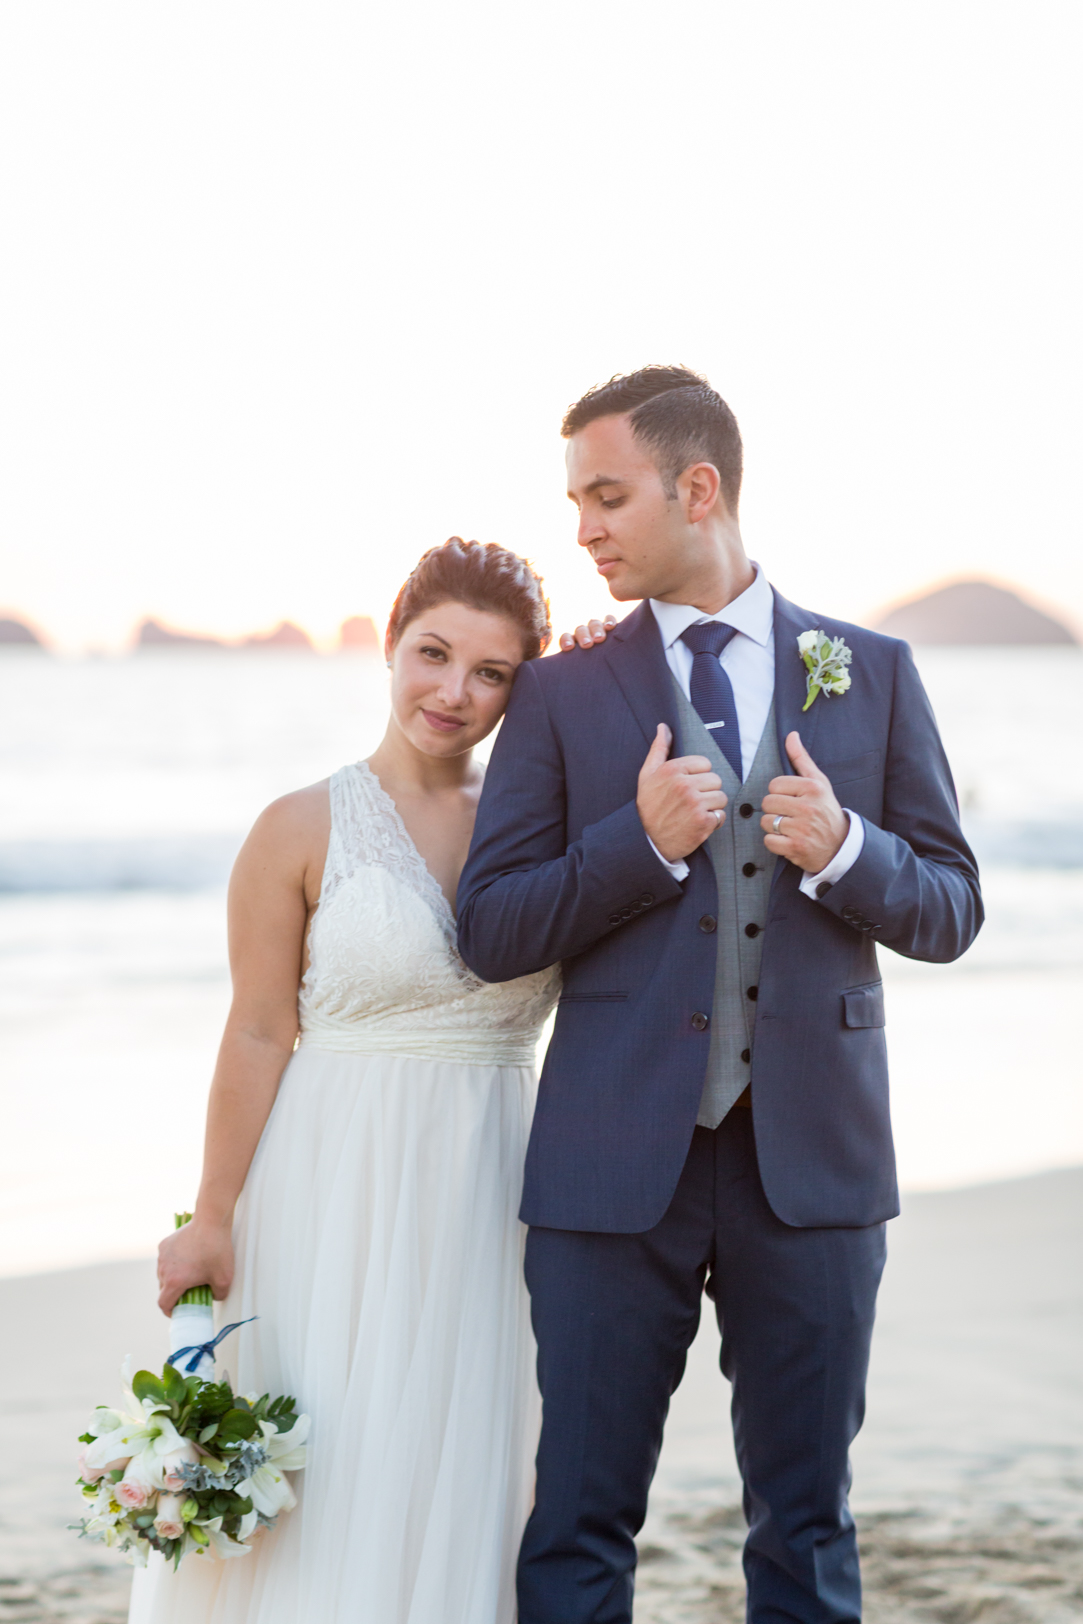 Bride and groom portrait on the beach at their Sunscape Dorado Pacifico Ixtapa destination wedding